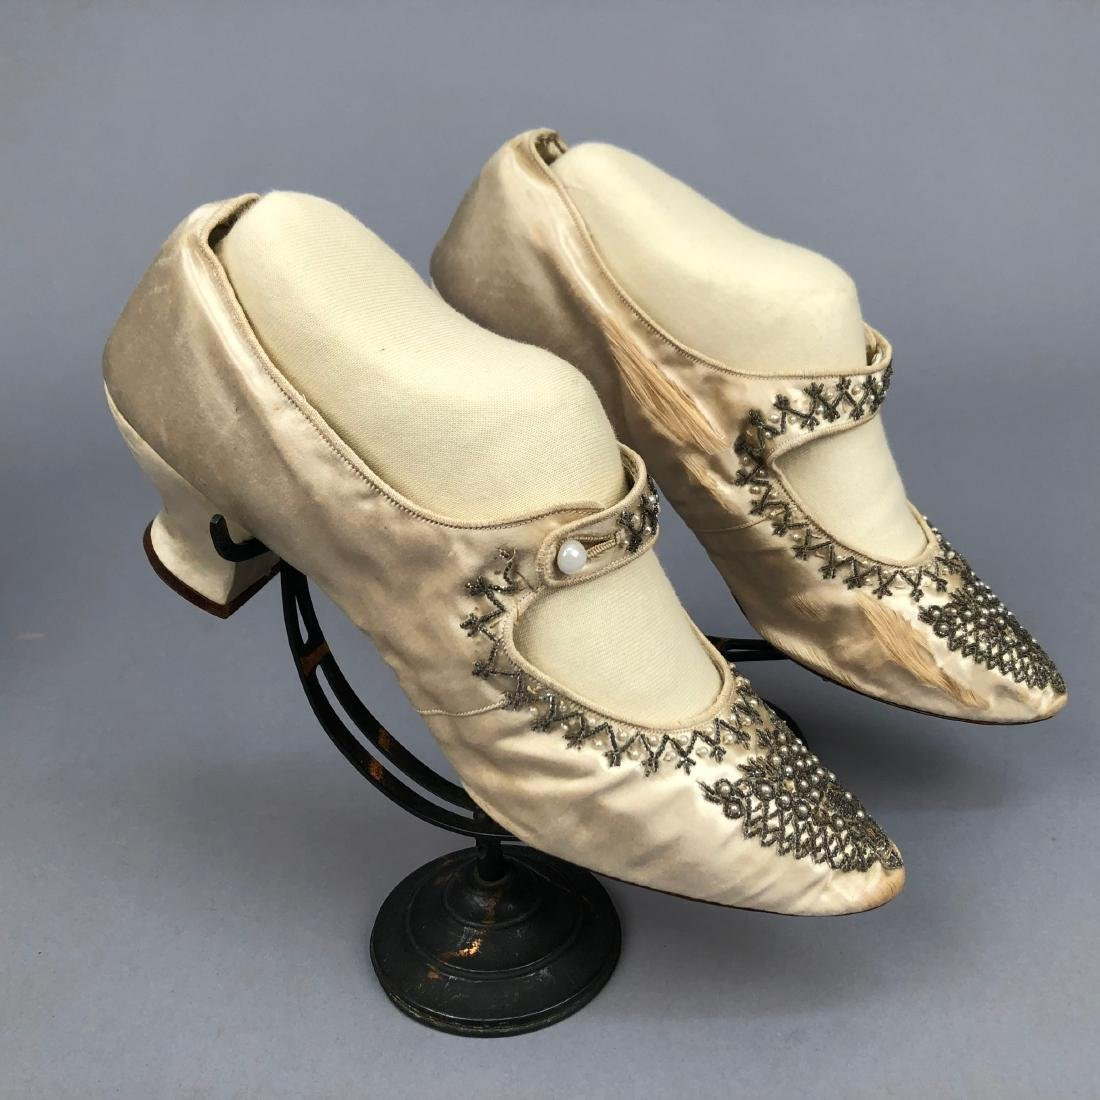 TWO PAIR BEADED SATIN WEDDING SHOES,  c. 1890 and 1914